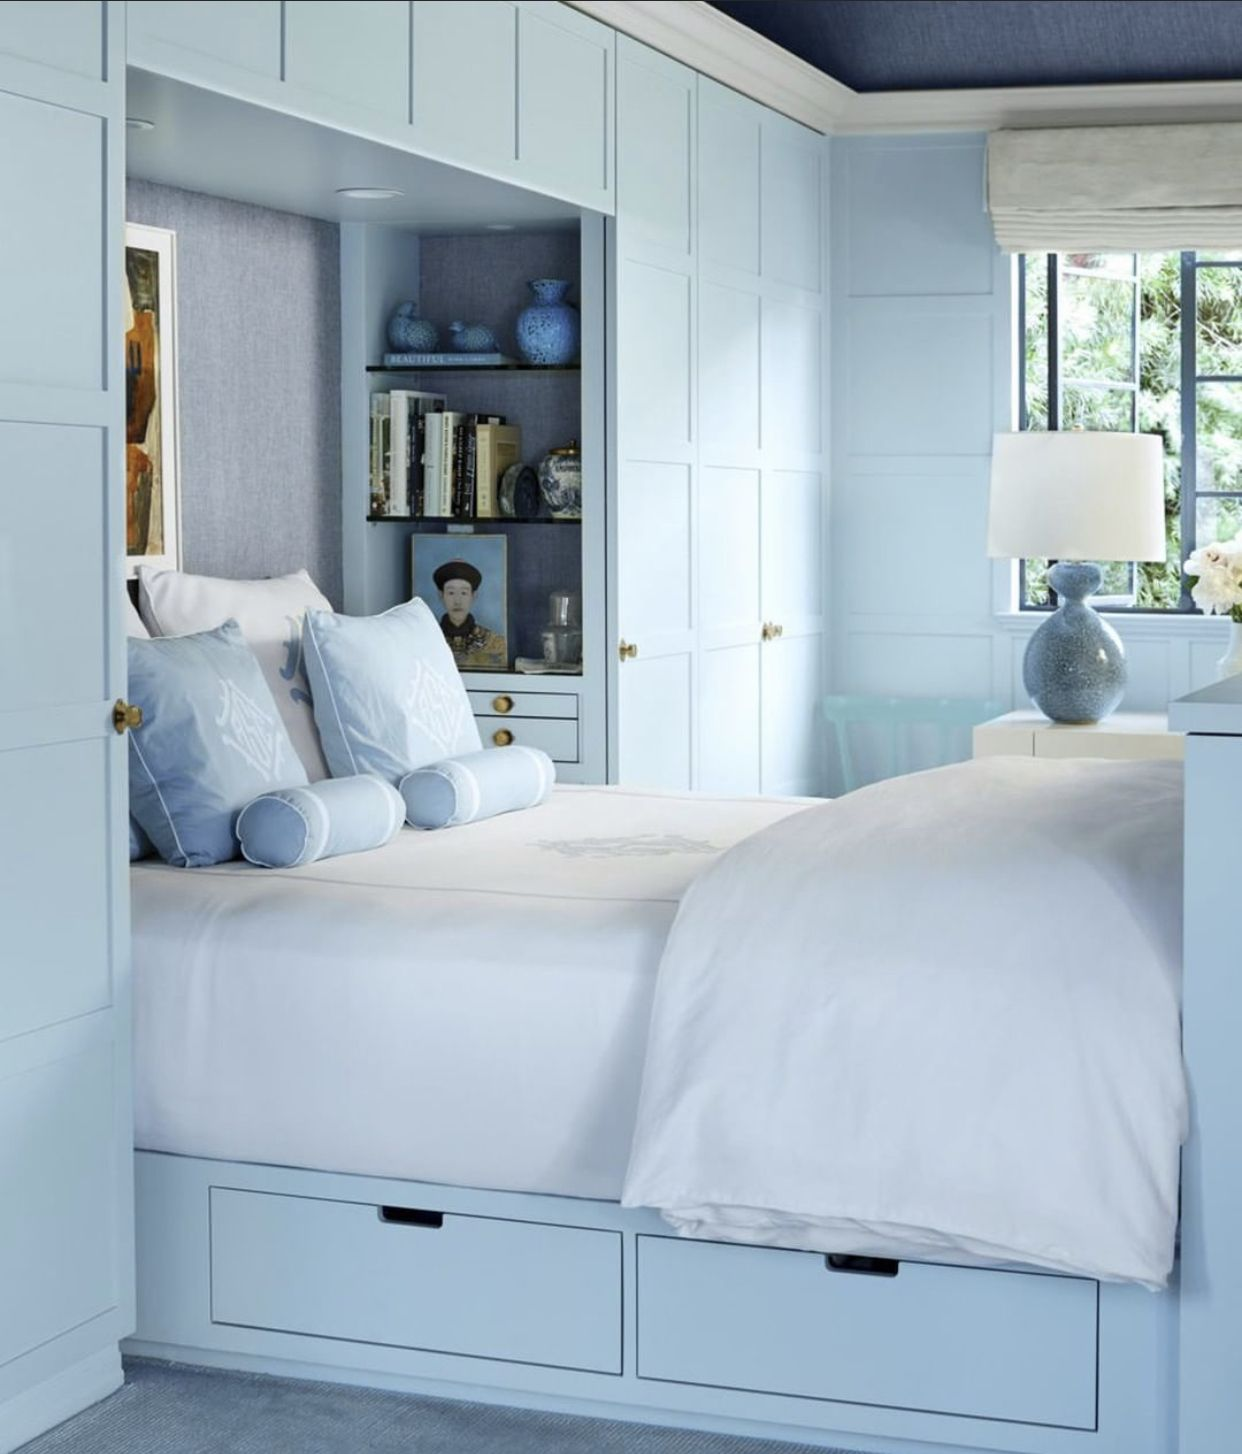 Pin by Megan Stevens on Perfect bedroom in 2020 Best